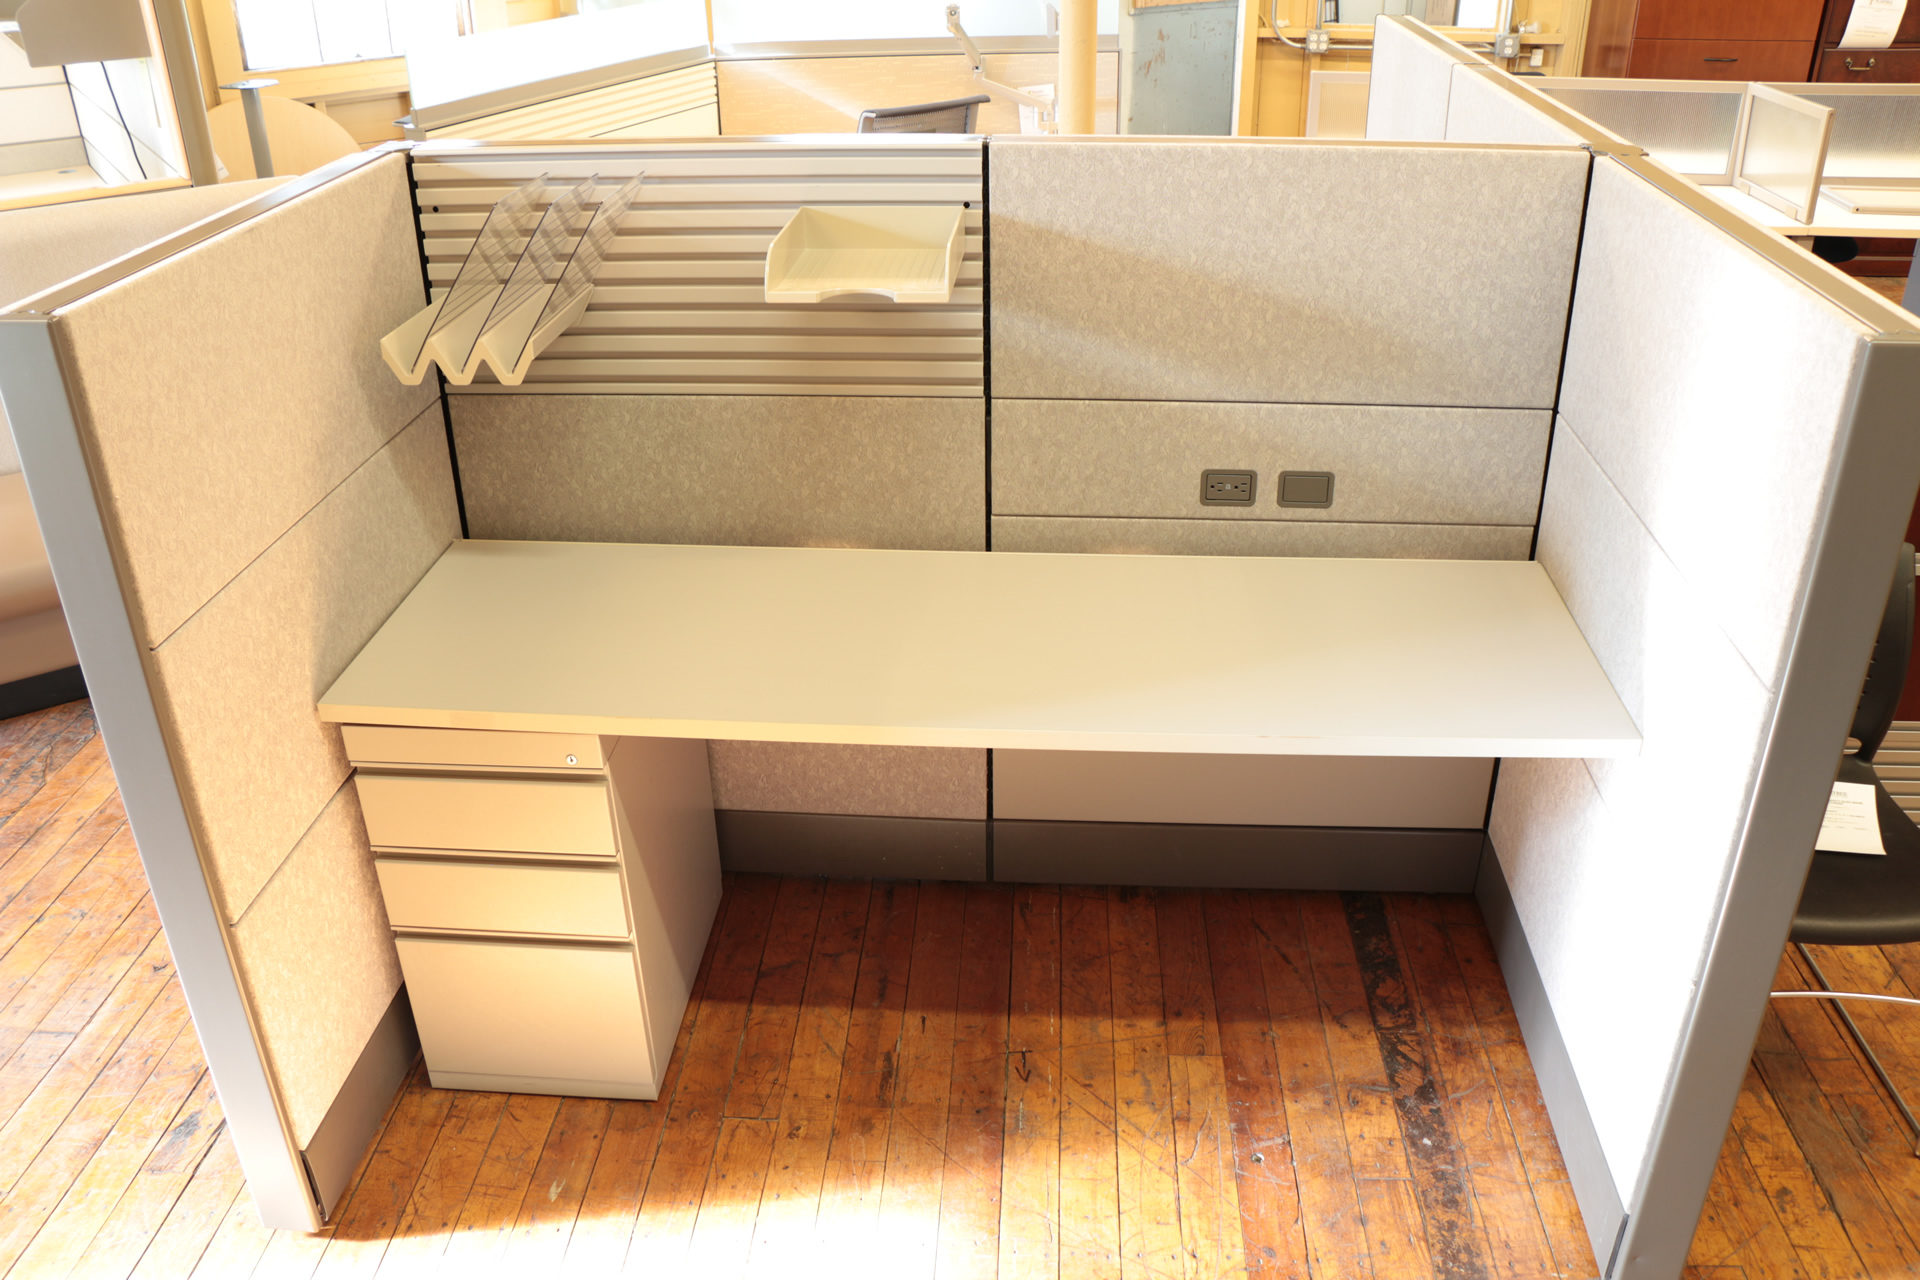 Herman Miller Ethospace 6′ x 3′ Call Center Cubicles